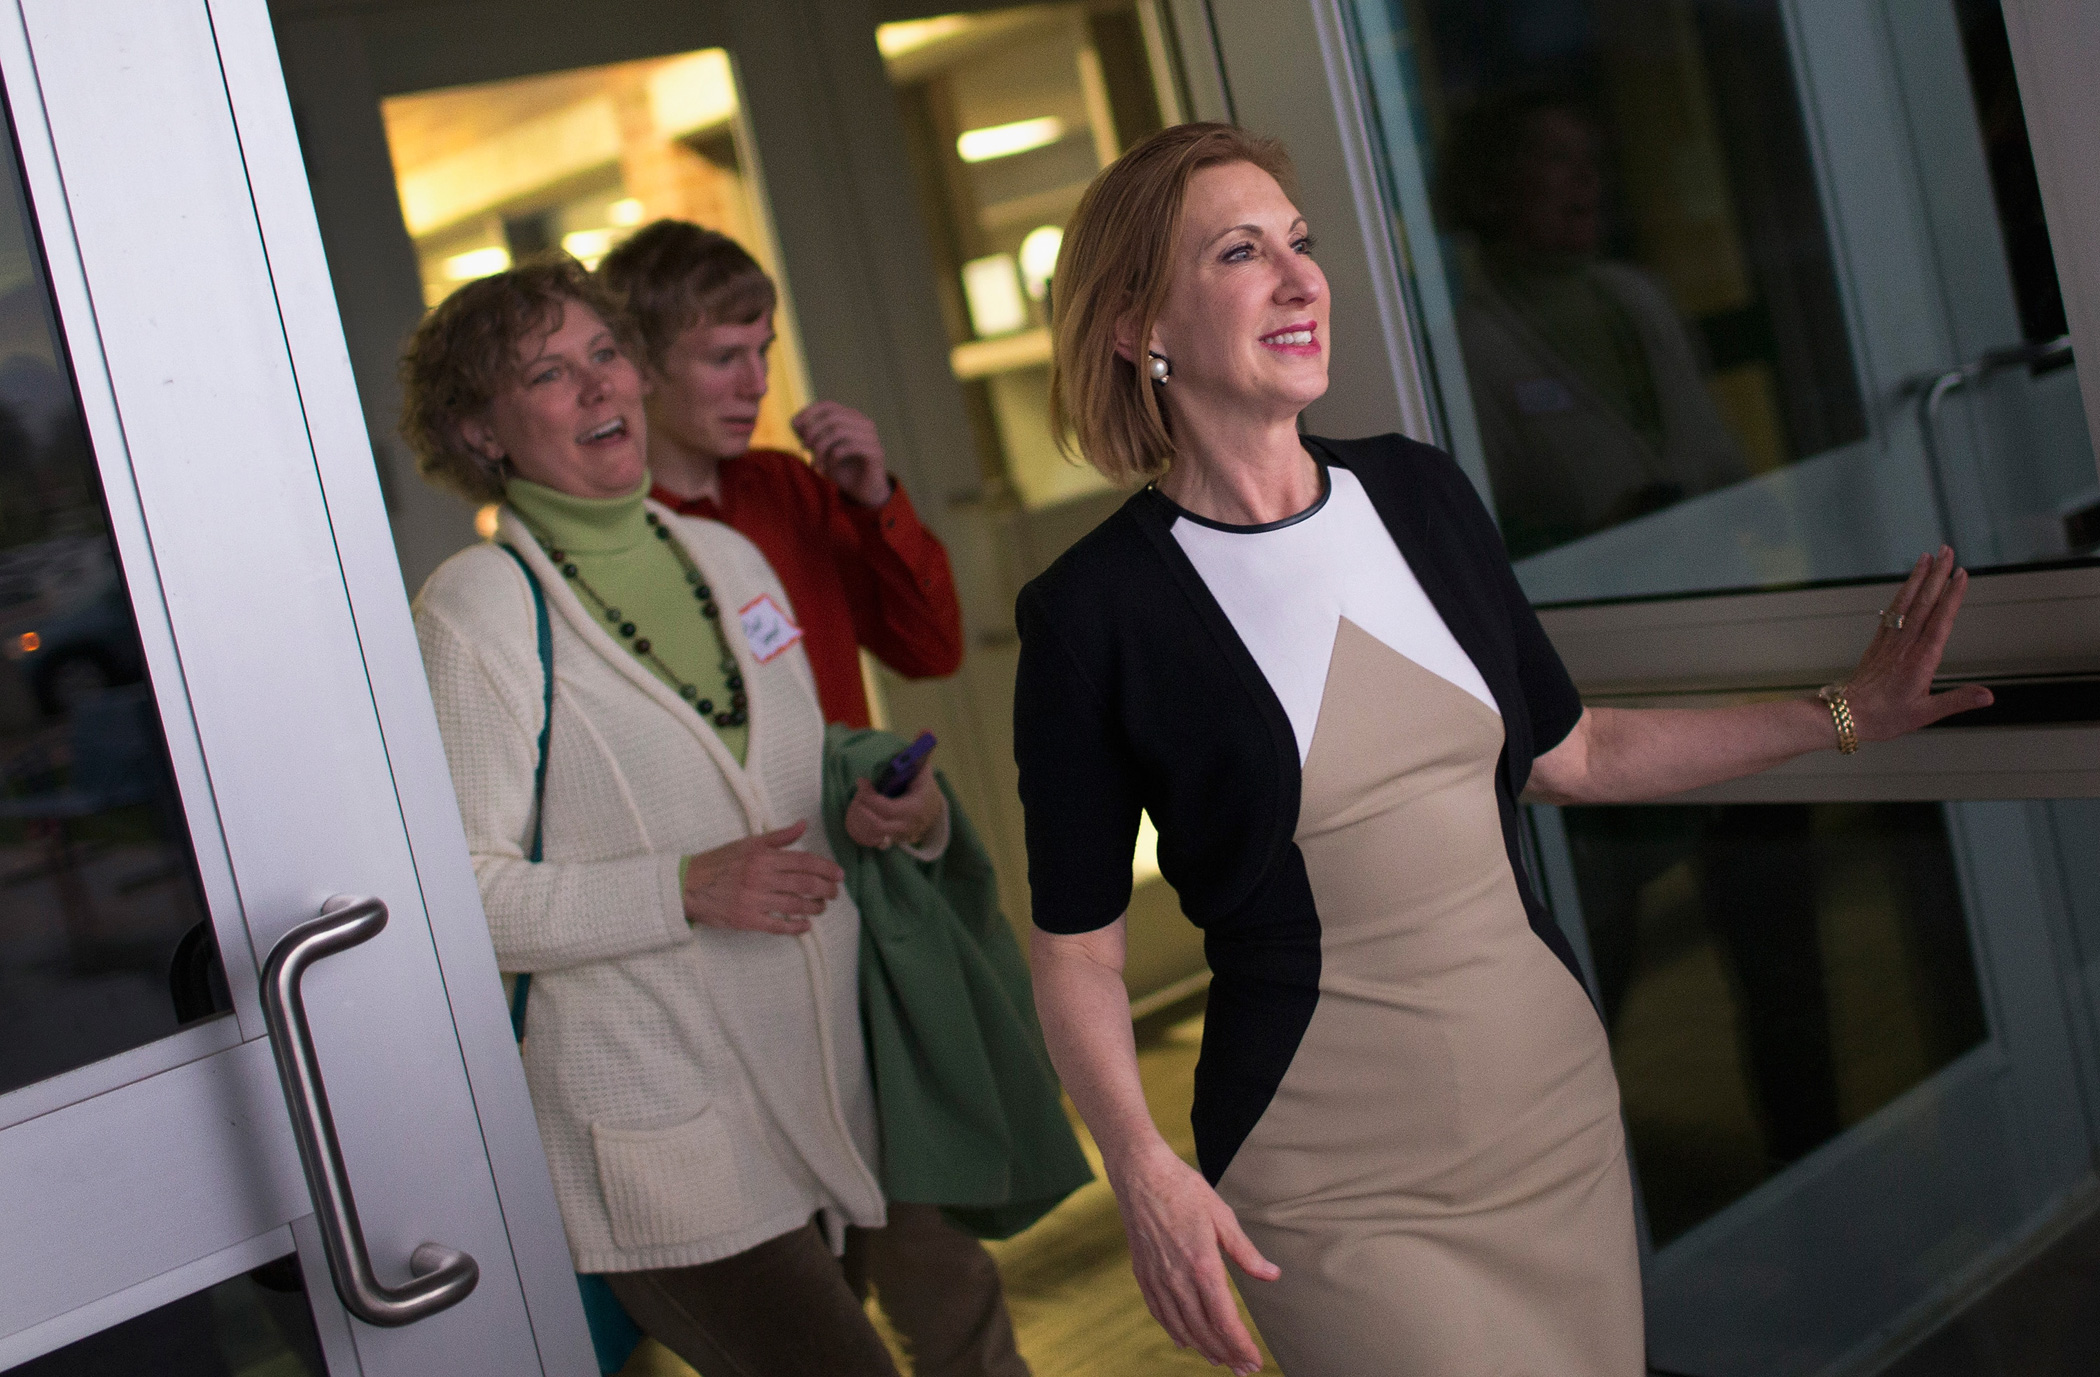 Carly Fiorina leaves Clear Creek Amana High School after speaking on April 24, 2015 in Tiffin, Iowa.